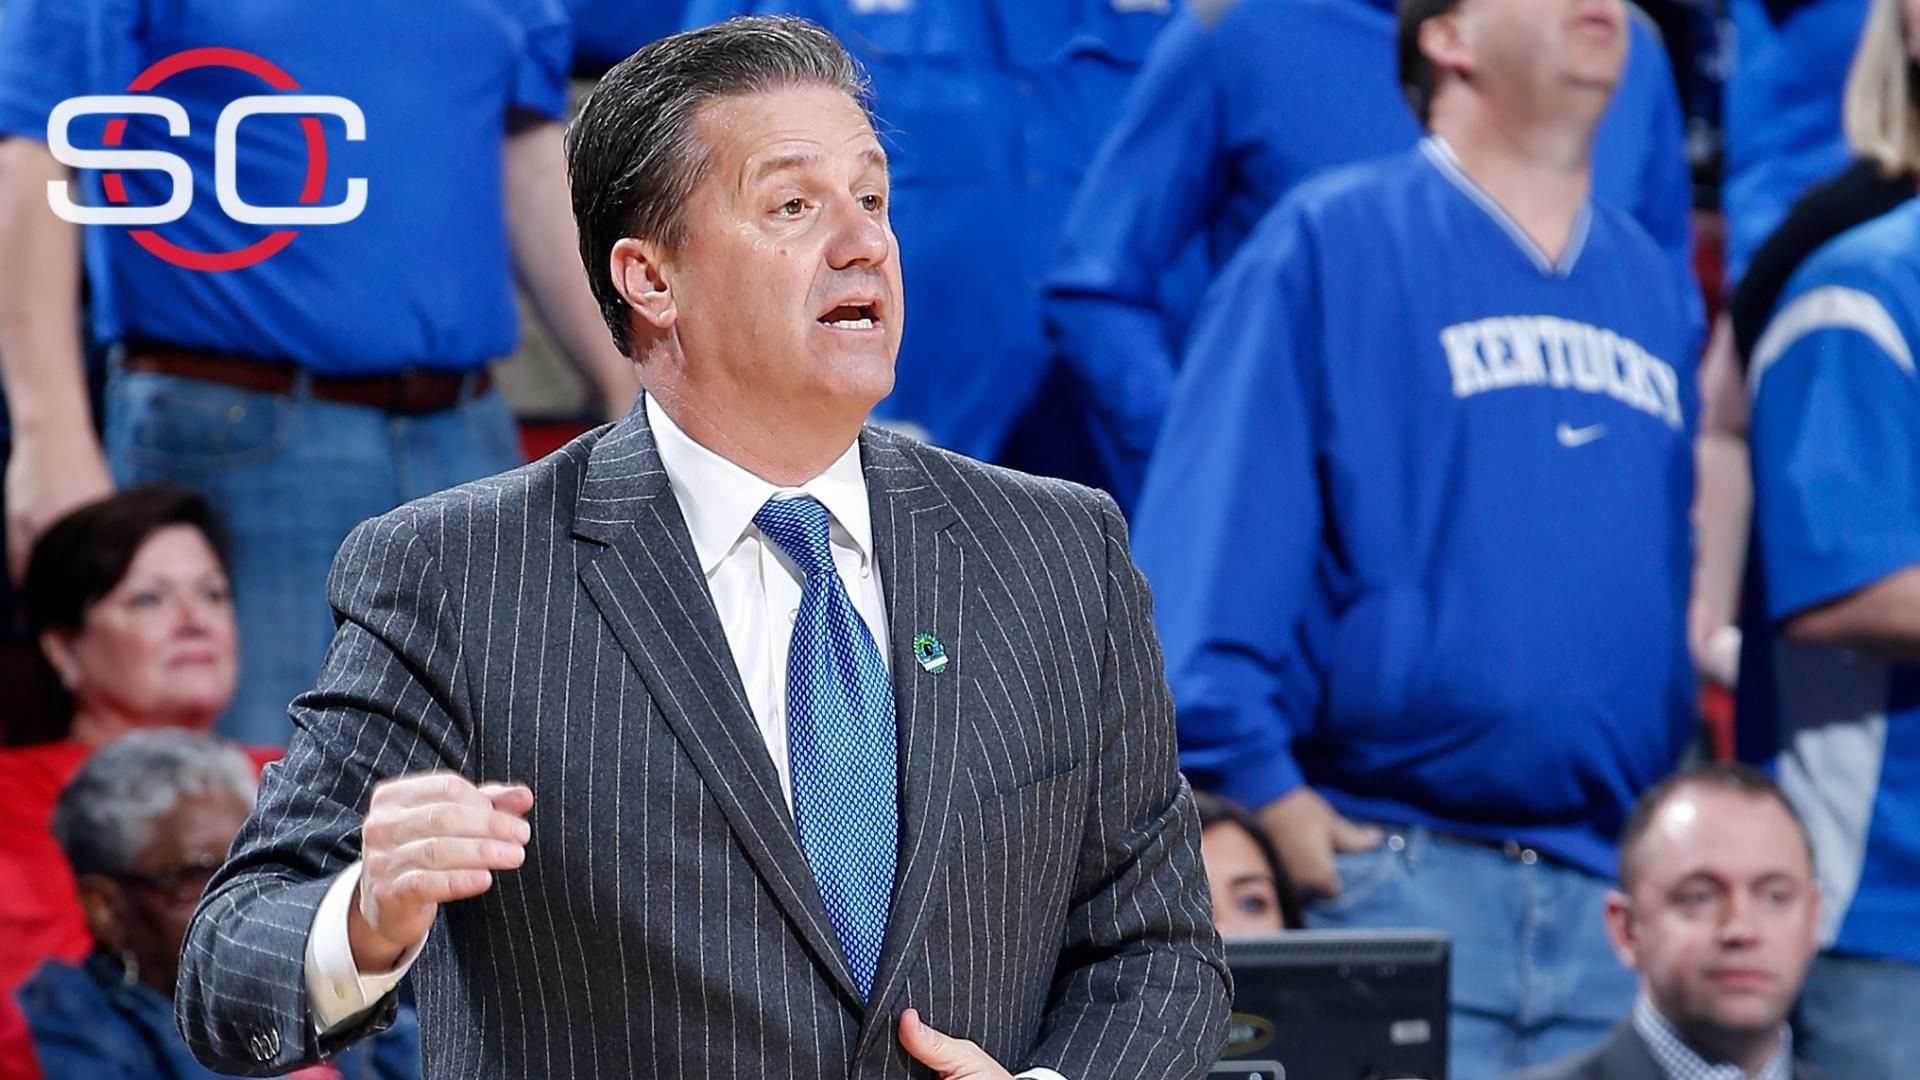 Is Calipari posturing by saying Wildcats stink?